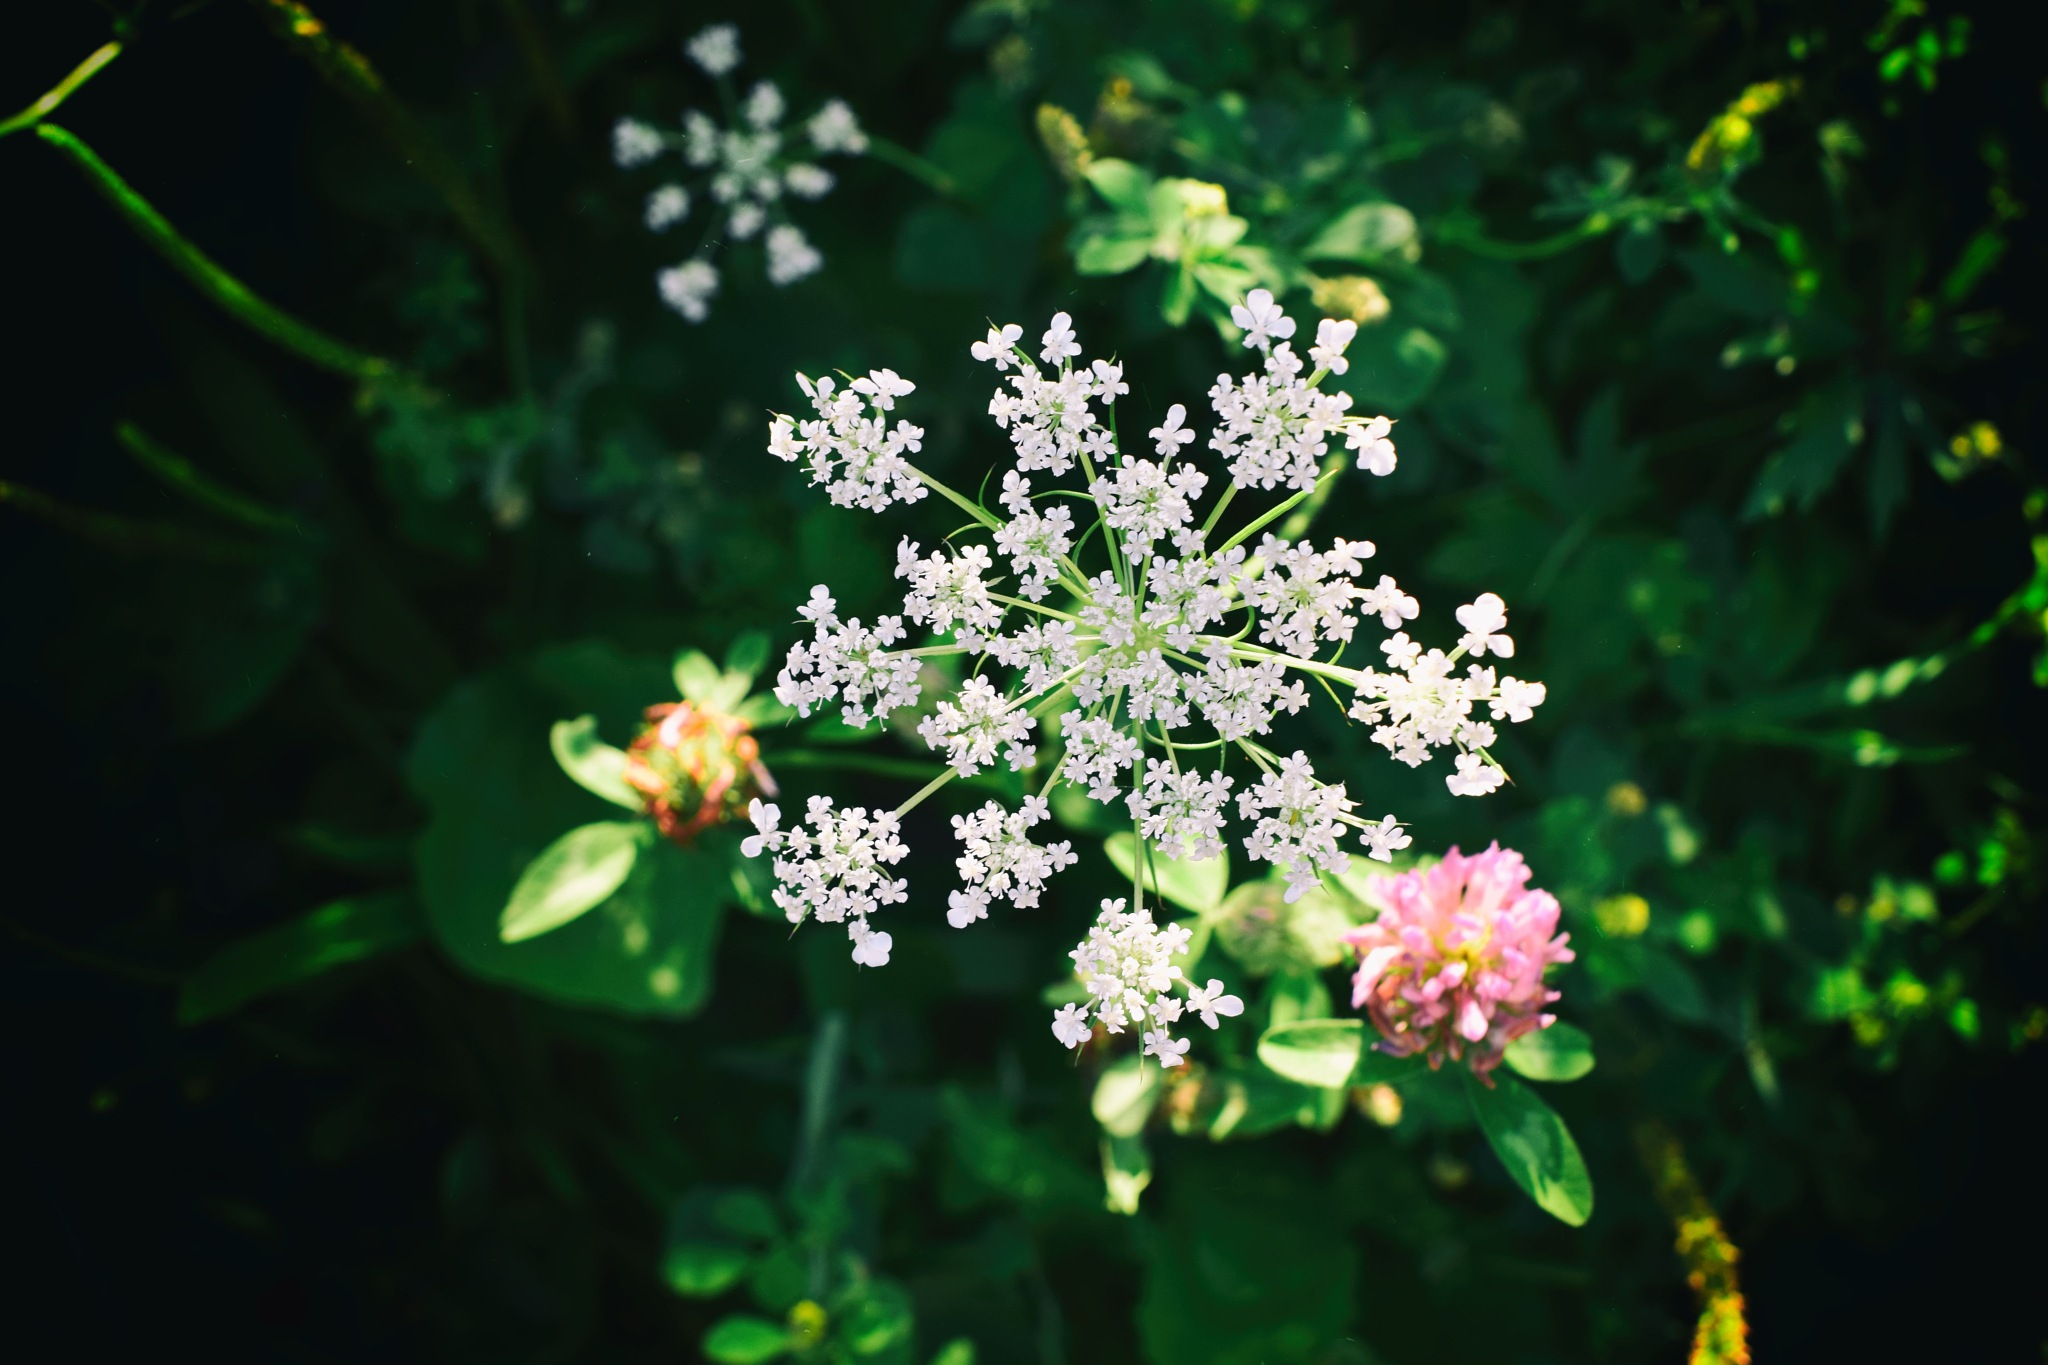 wild carrots by Javorka